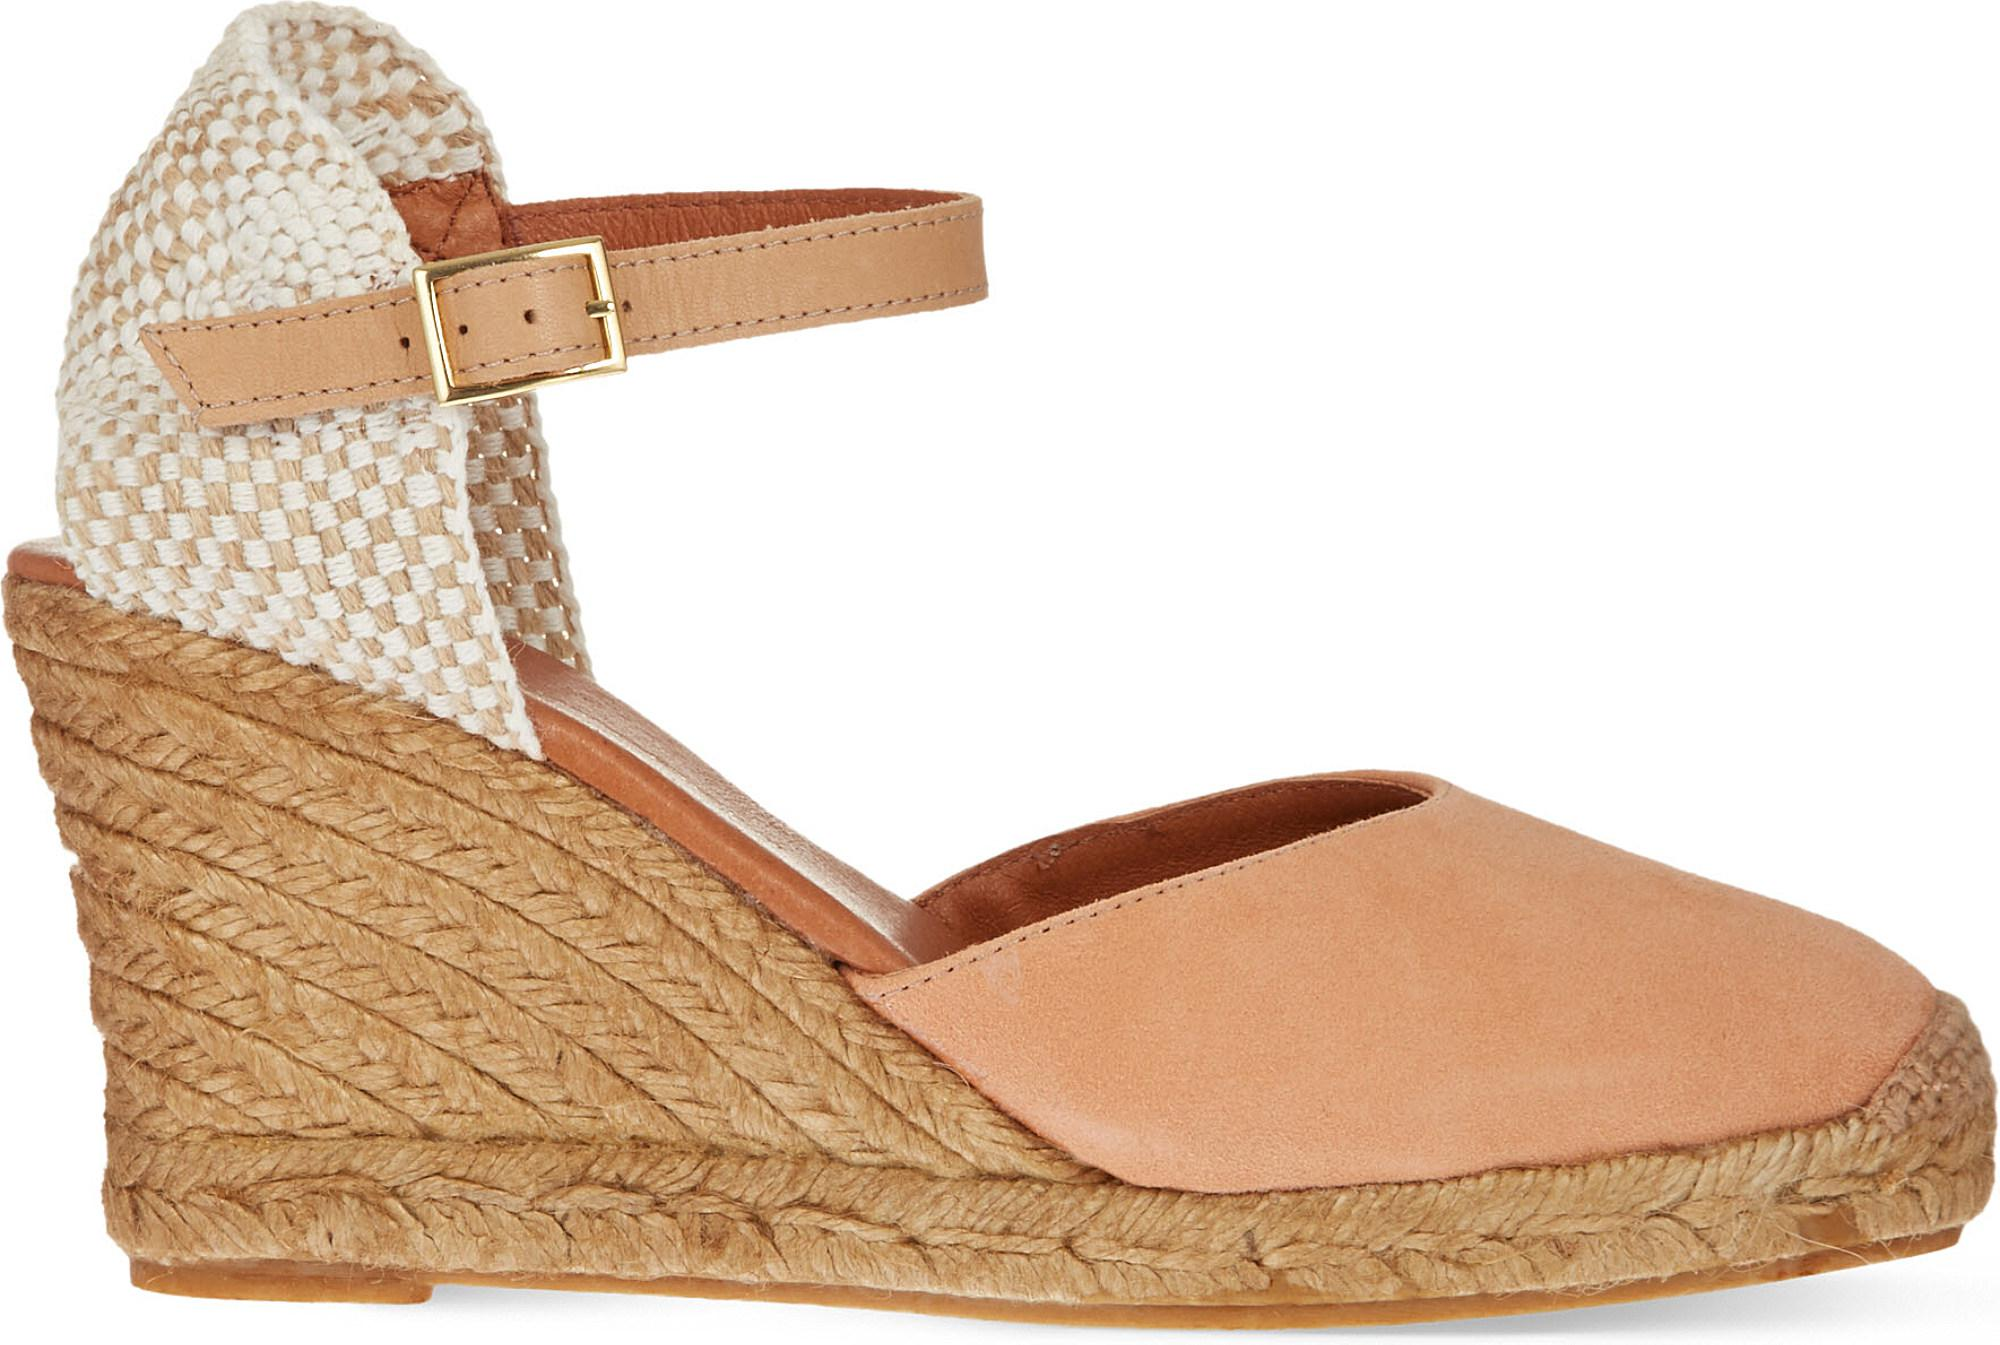 KG by Kurt Geiger Nala in Nude (Natural) - Lyst